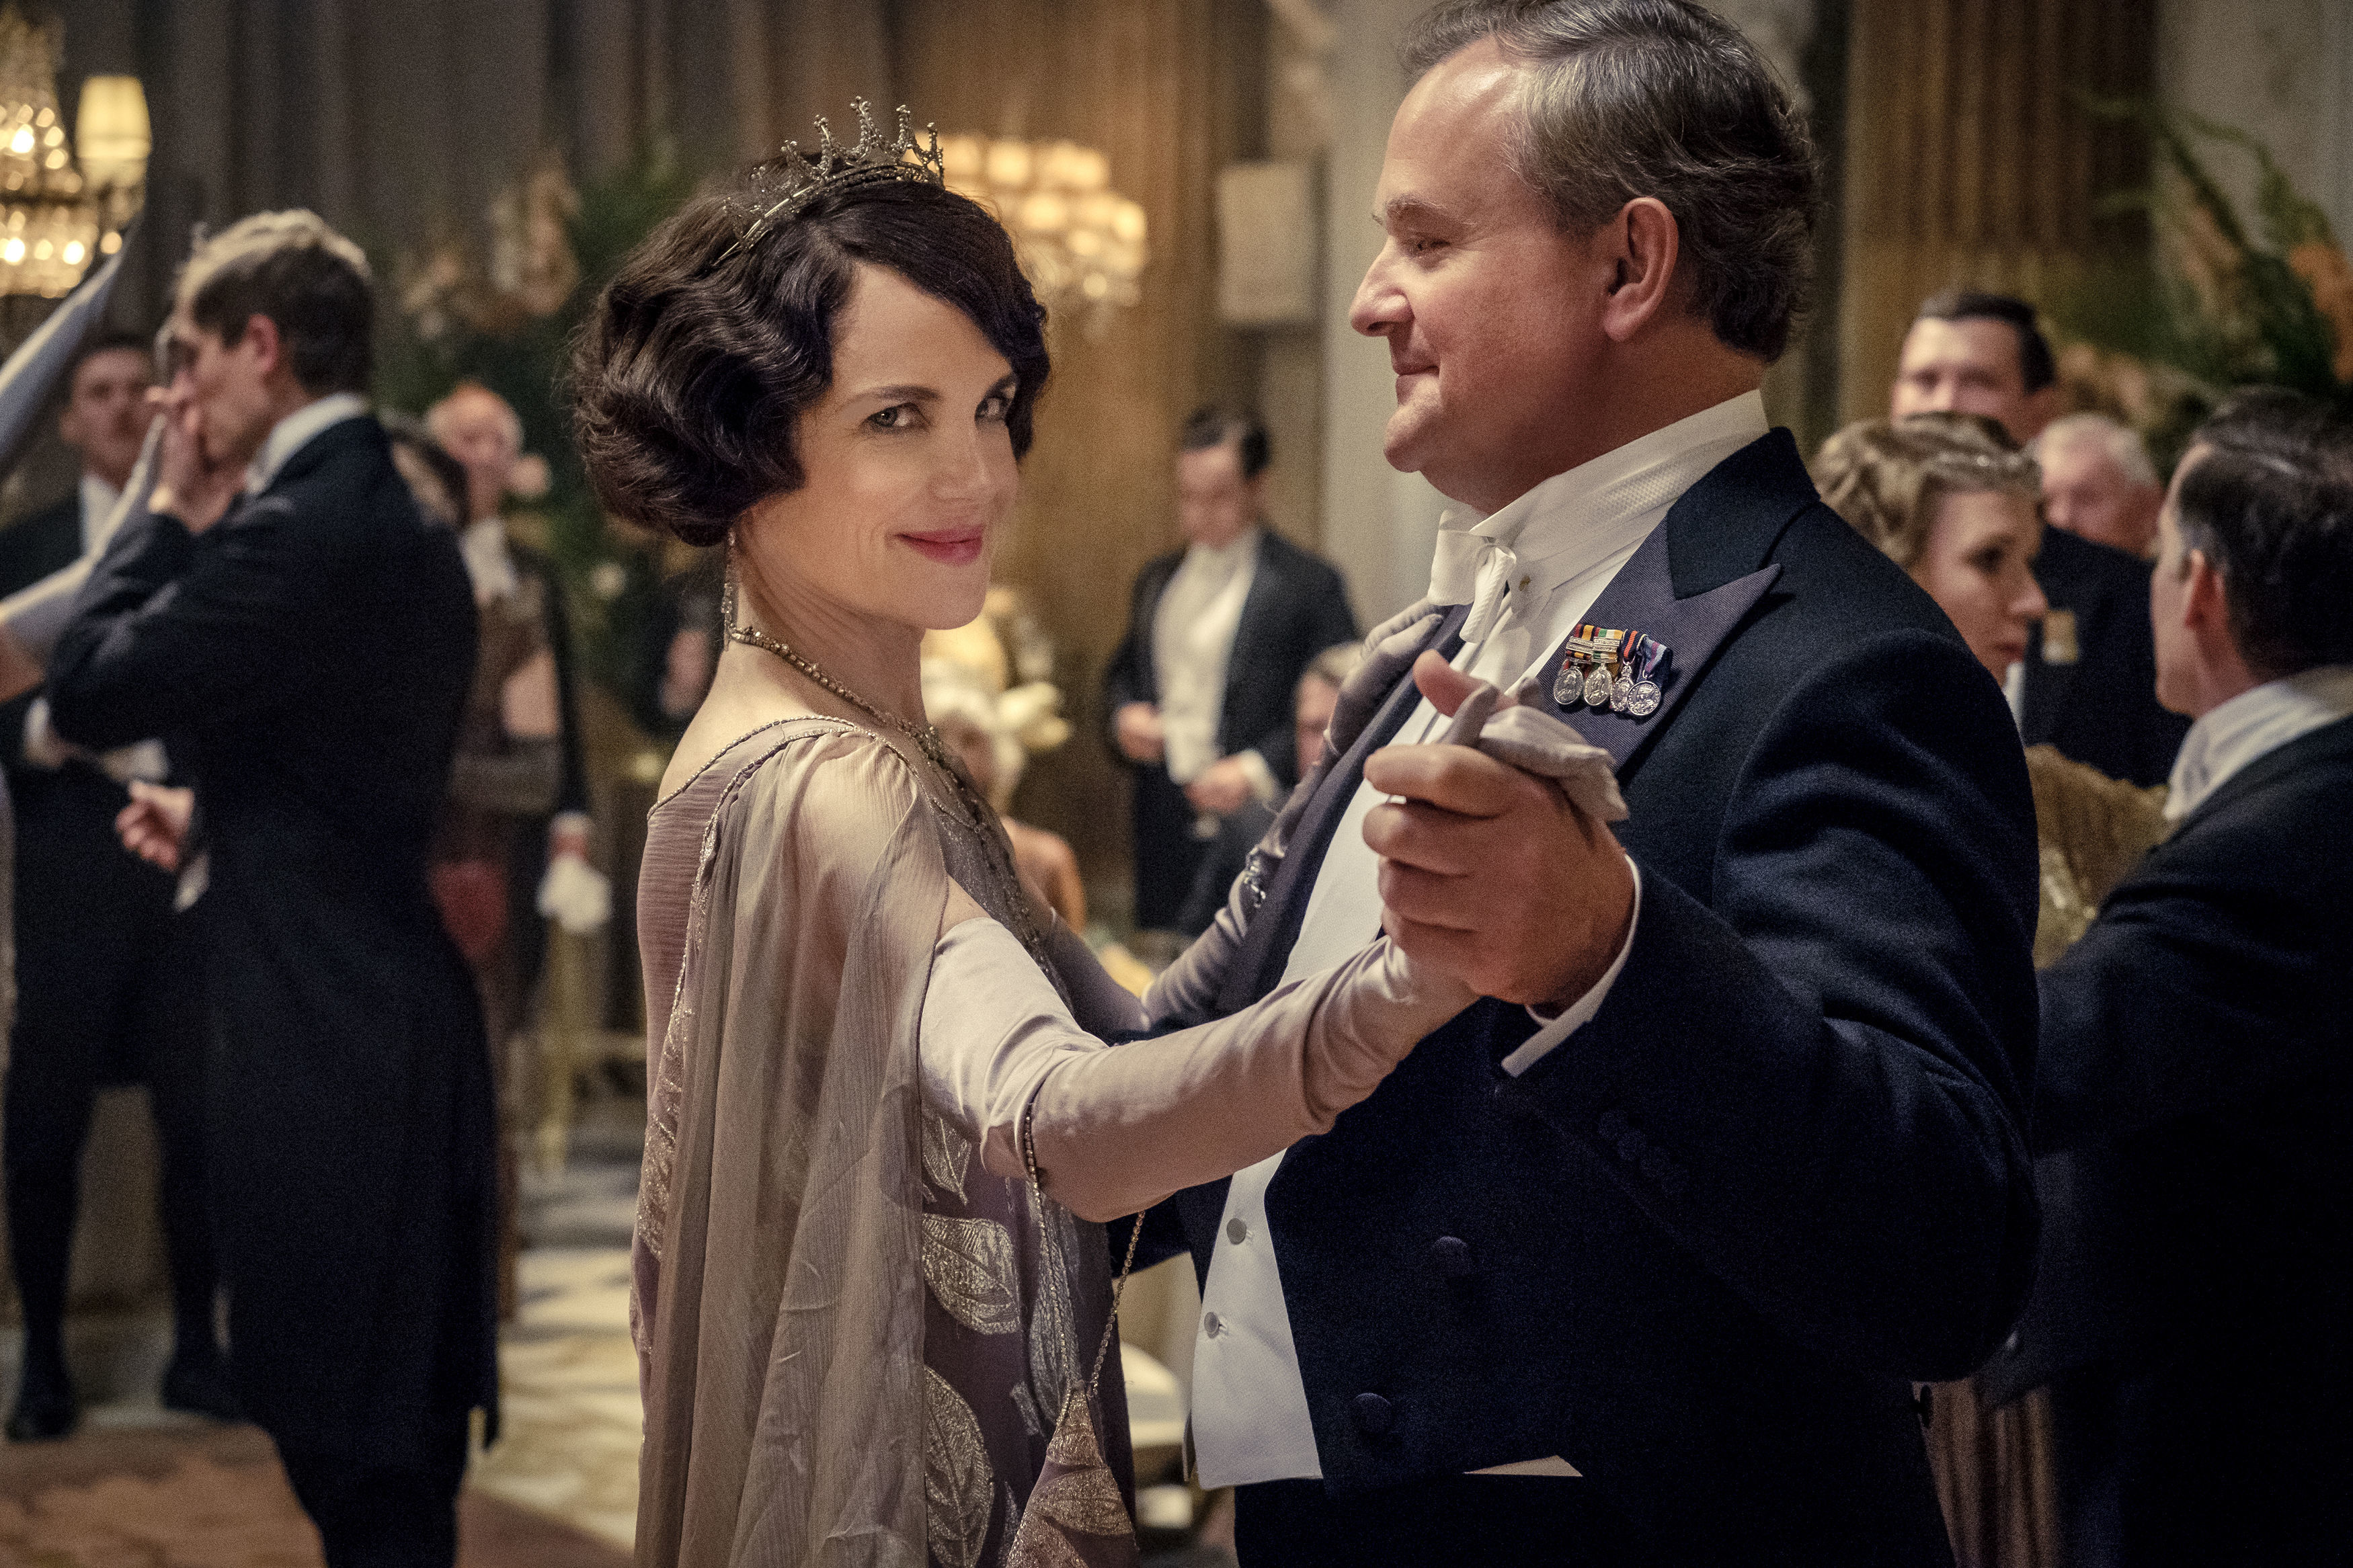 """This image released by Focus Features shows Elizabeth McGovern, left, as Lady Grantham and Hugh Bonneville, as Lord Grantham, in """"Downton Abbey"""". The highly-anticipated film continuation of the ÒMasterpieceÓ series that wowed audiences for six seasons, will be released Sept. 13, 2019, in the United Kingdom and on Sept. 20 in the United States. (Jaap Buitendijk/Focus Features via AP)"""